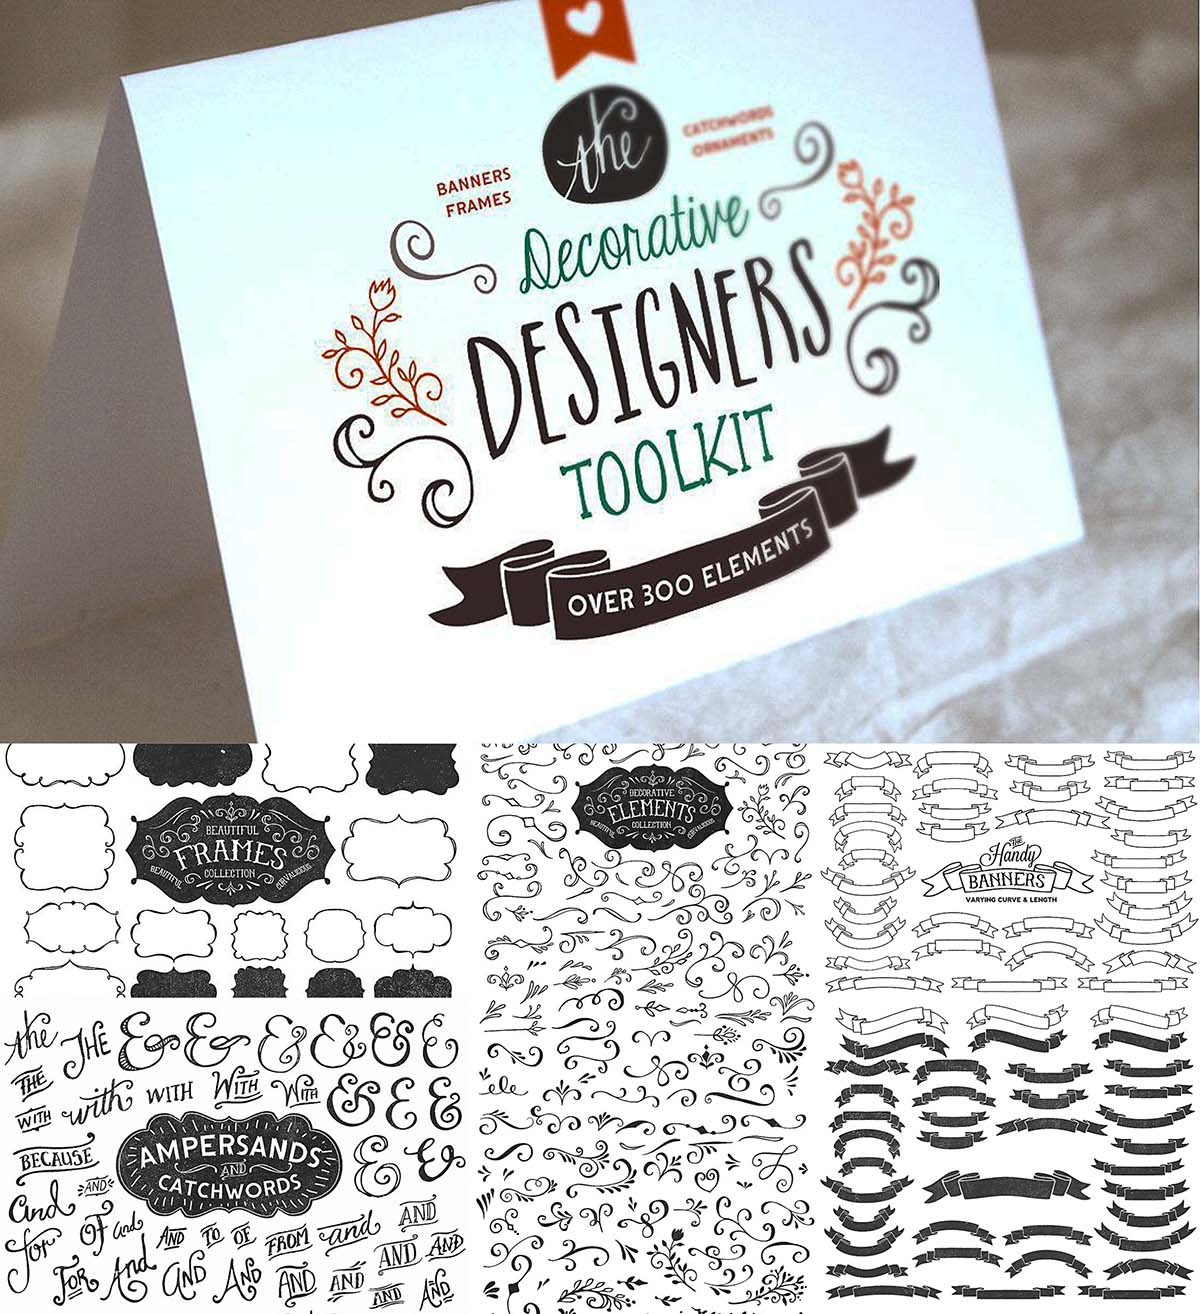 Decorative designers toolkit + bonus